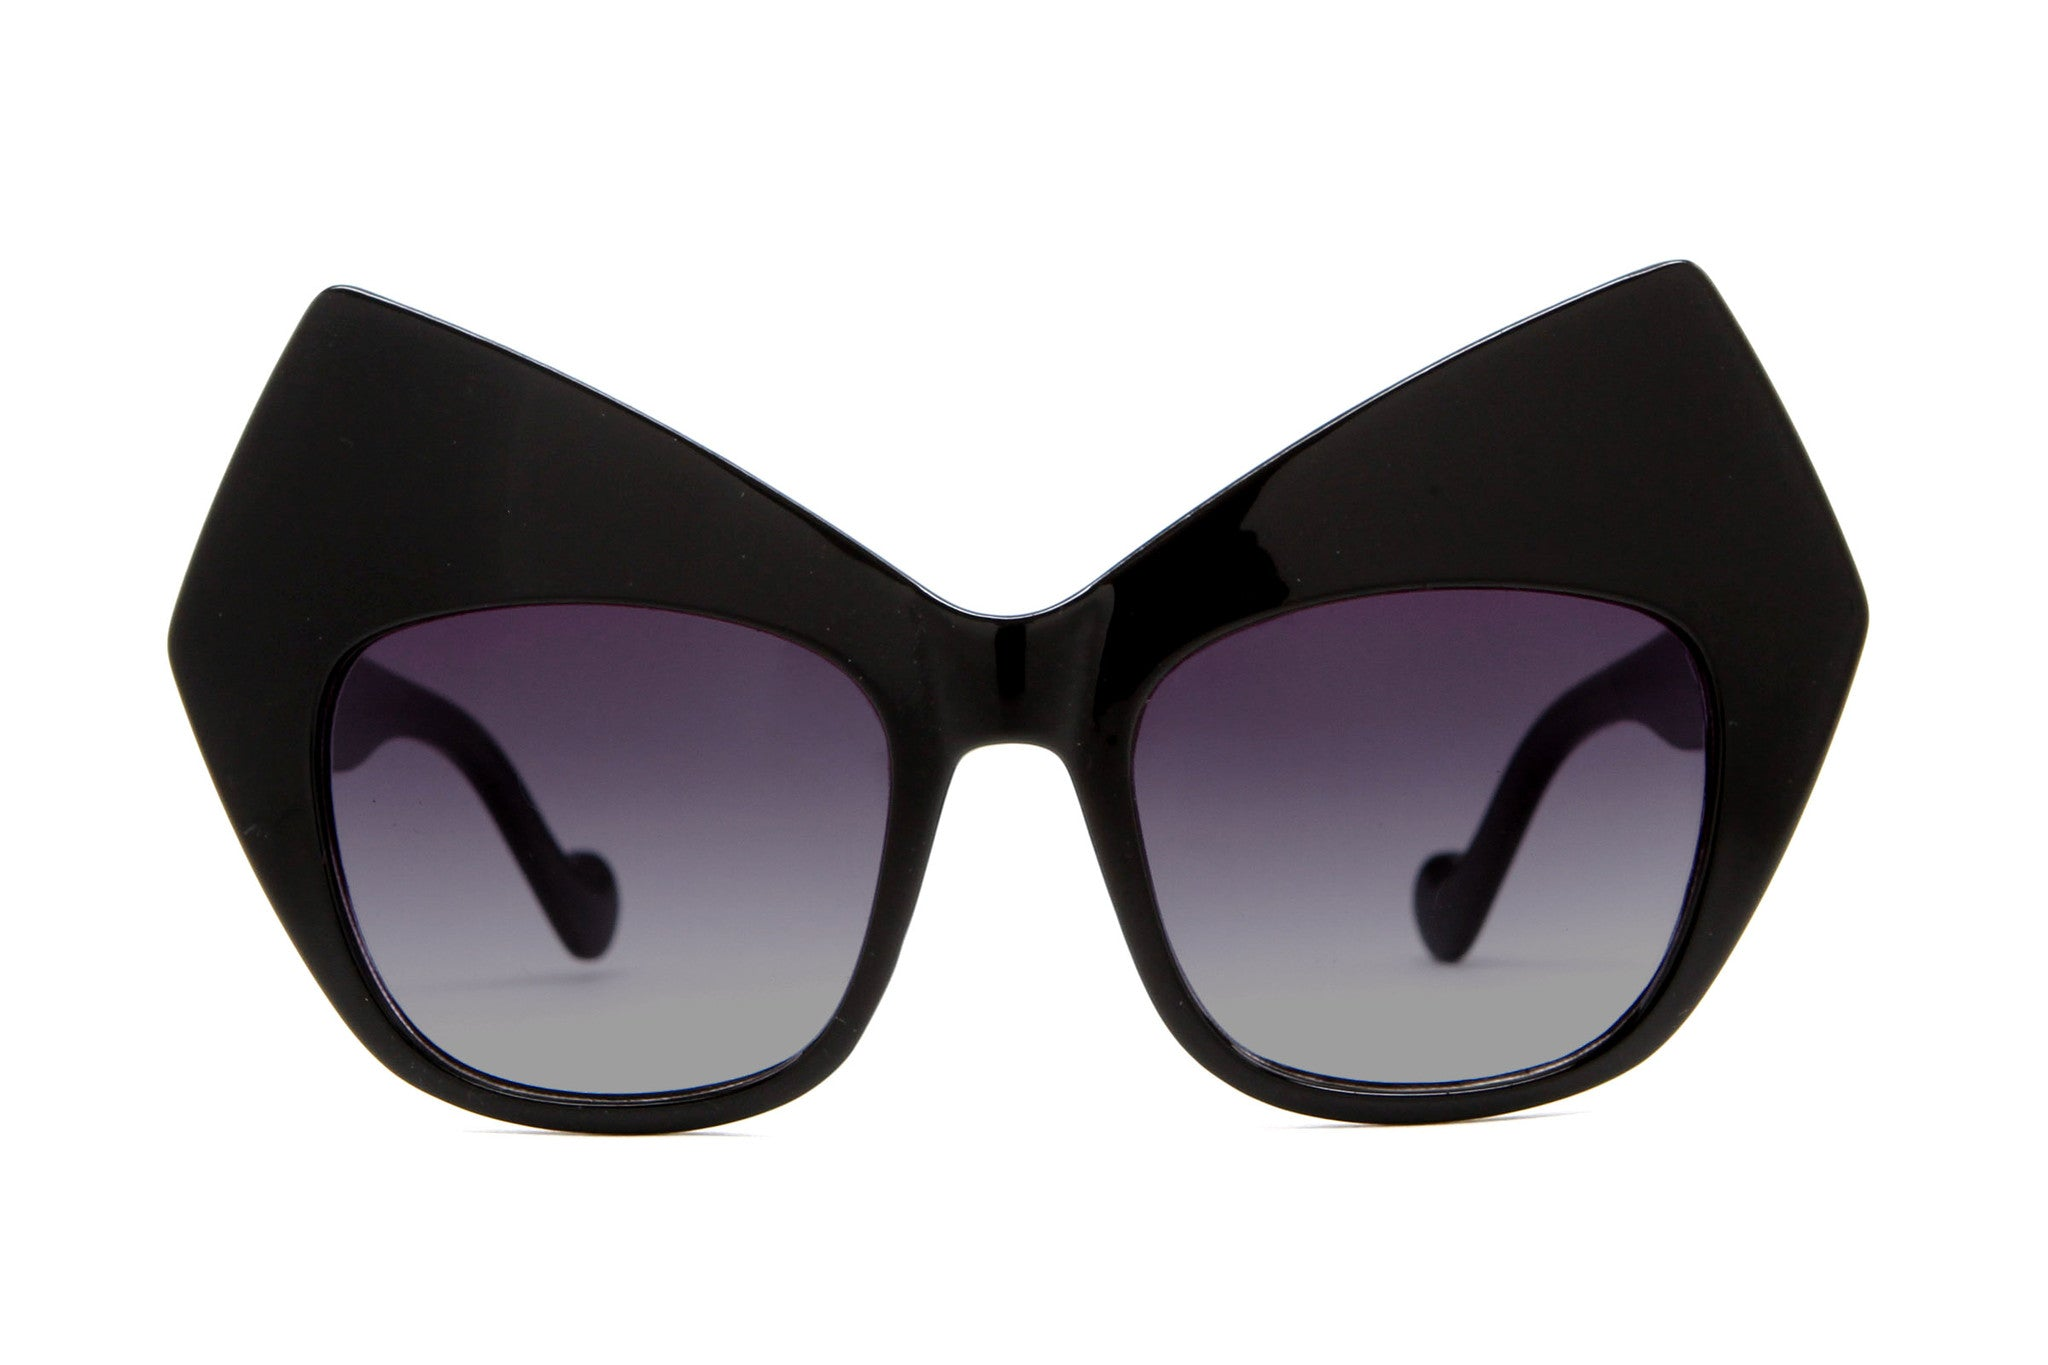 Bat Ears Sunglasses